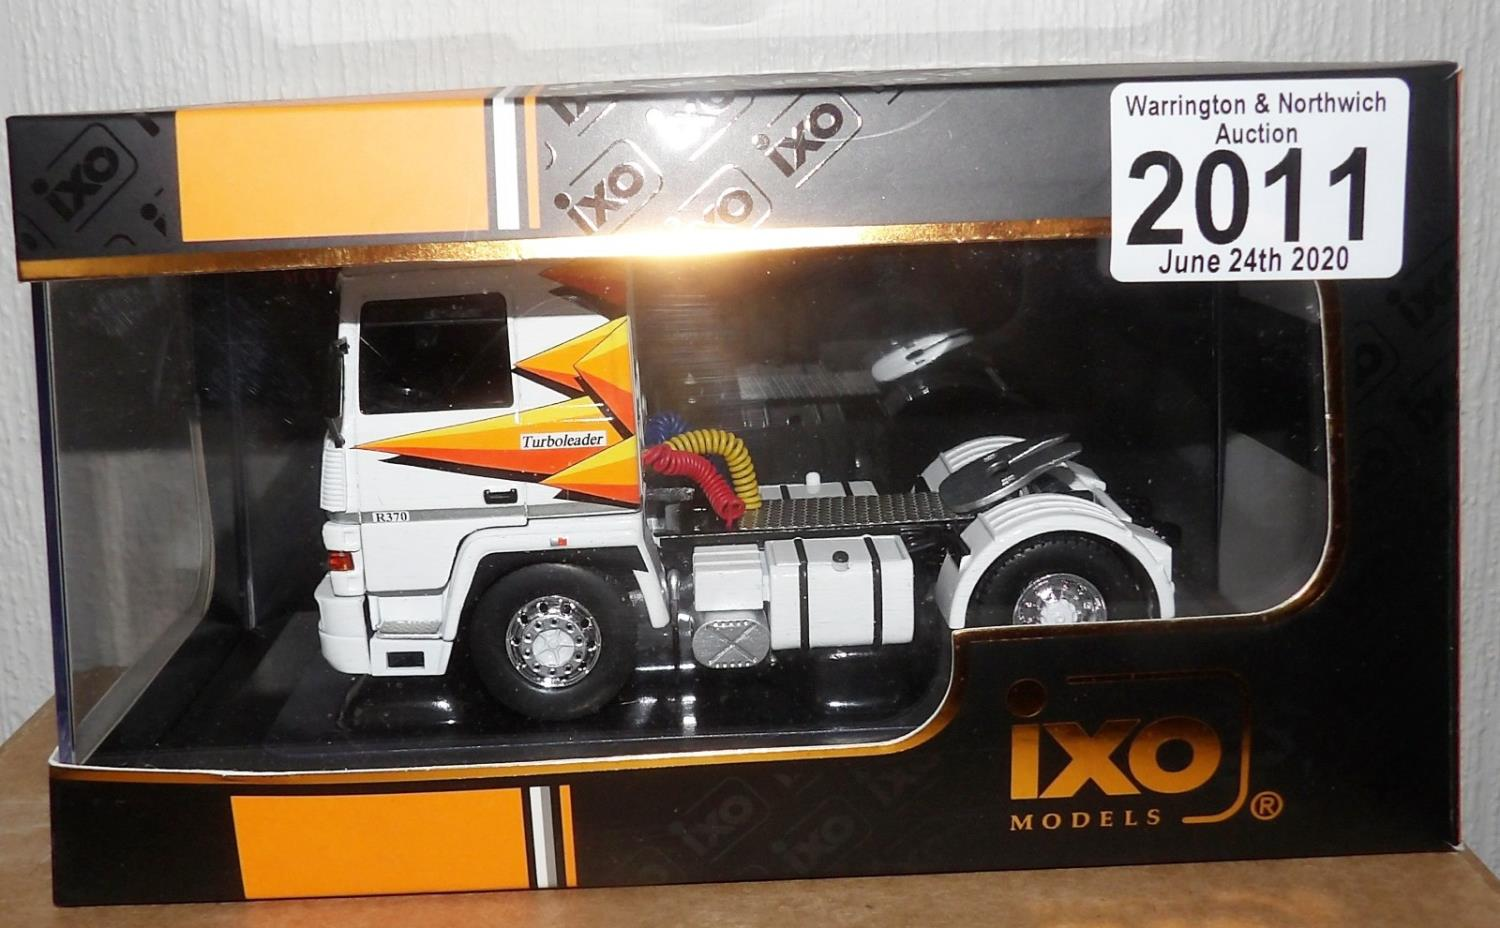 Lot 2011 - IXO 1.43 Scale RENAULT R370 Turbo Leader 1987. P&P Group 1 (£14+VAT for the first lot and £1+VAT for